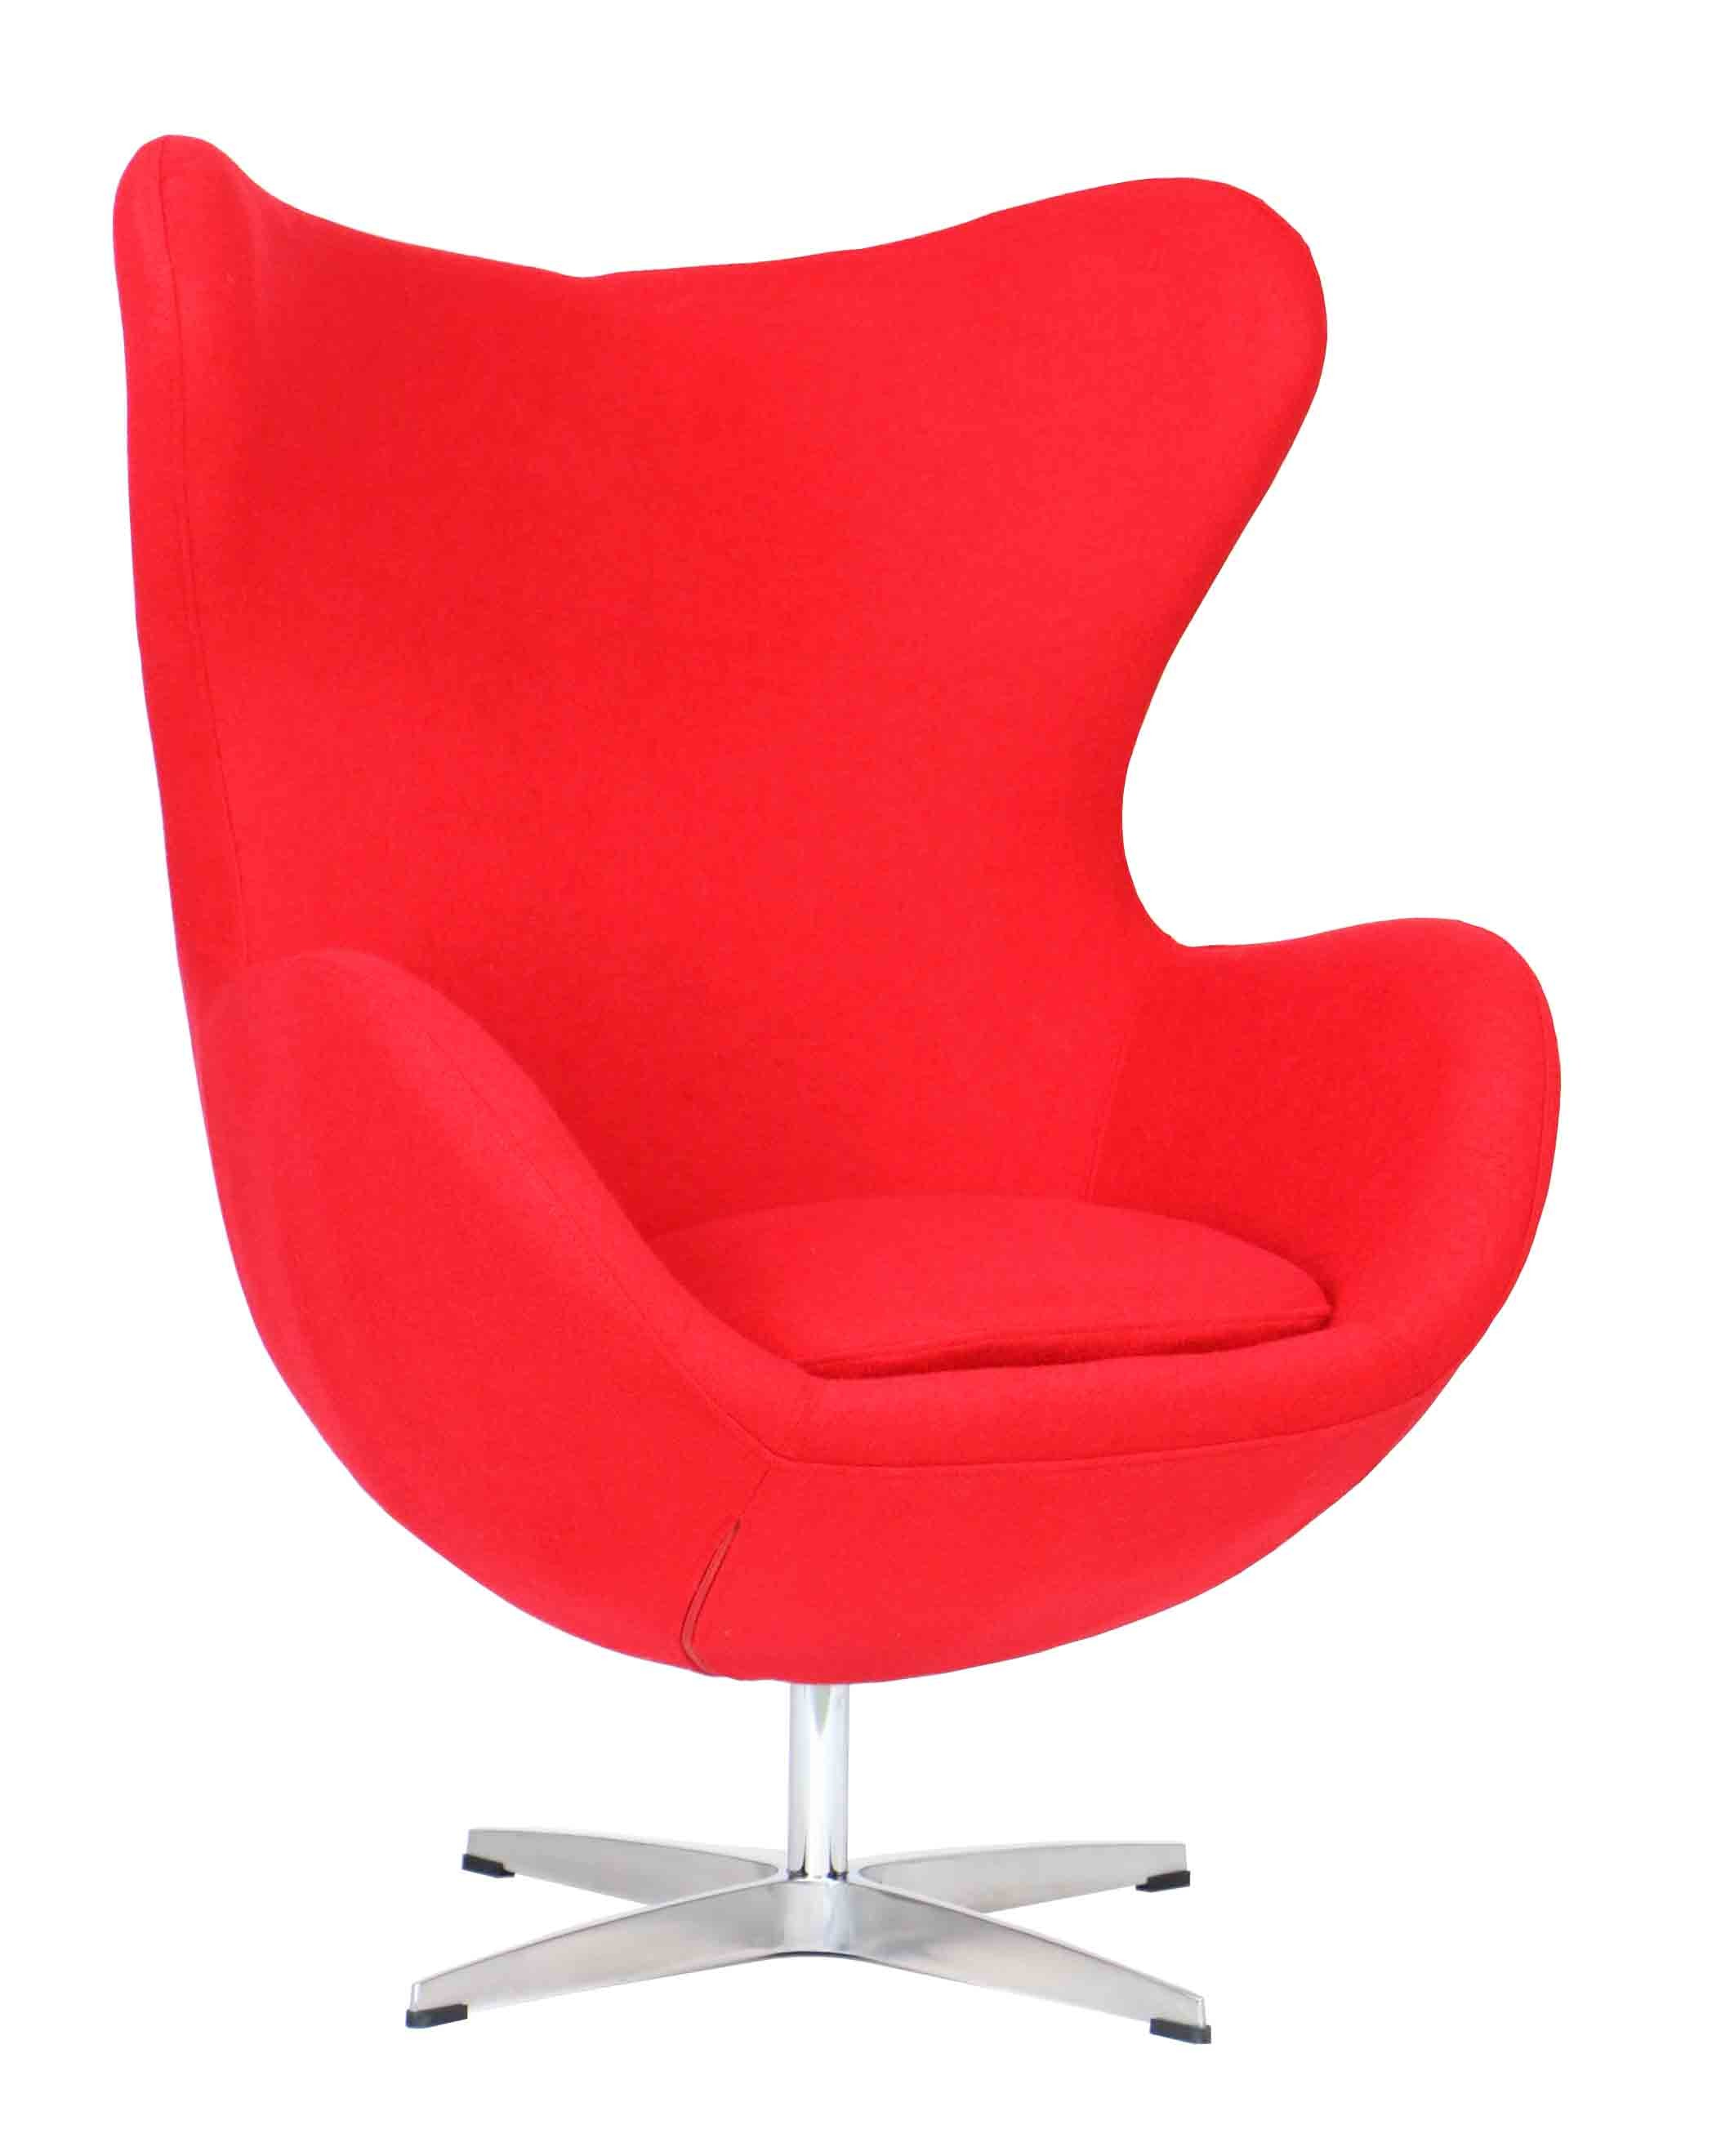 Designer replica egg chair in red furniture home d cor for Imitation designer chairs